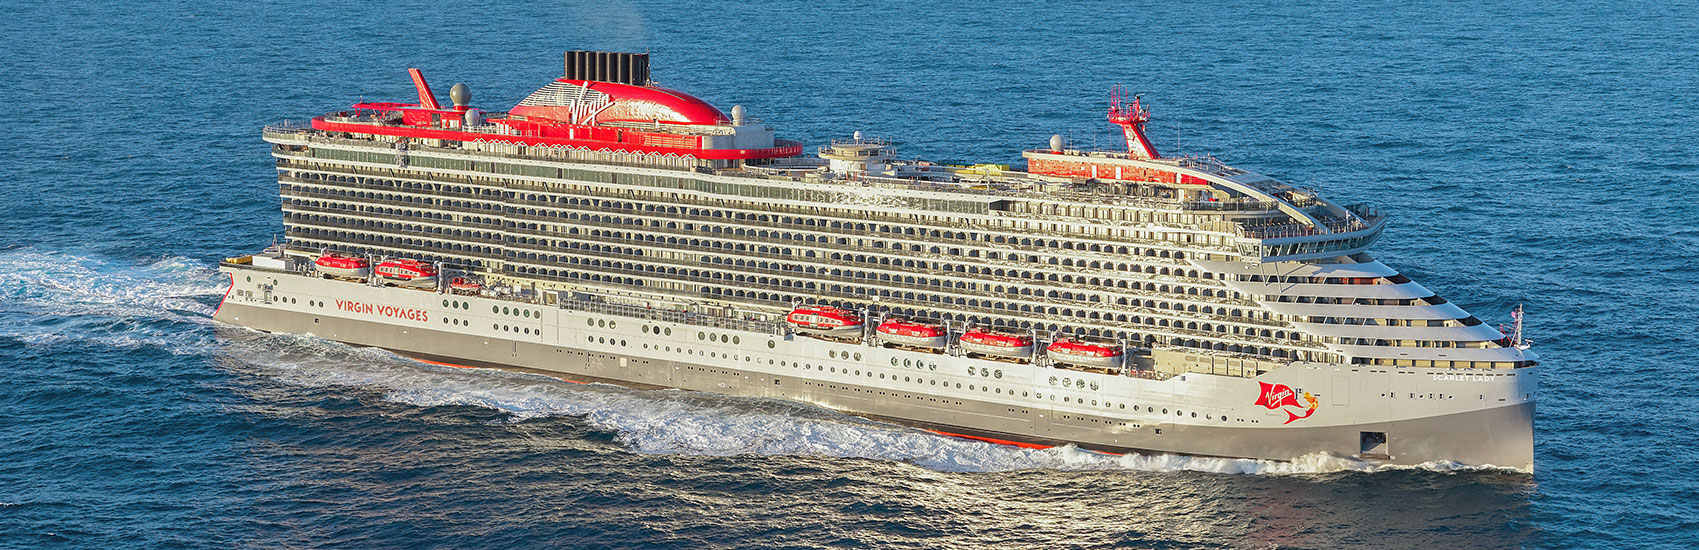 Save Now with Virgin Voyages